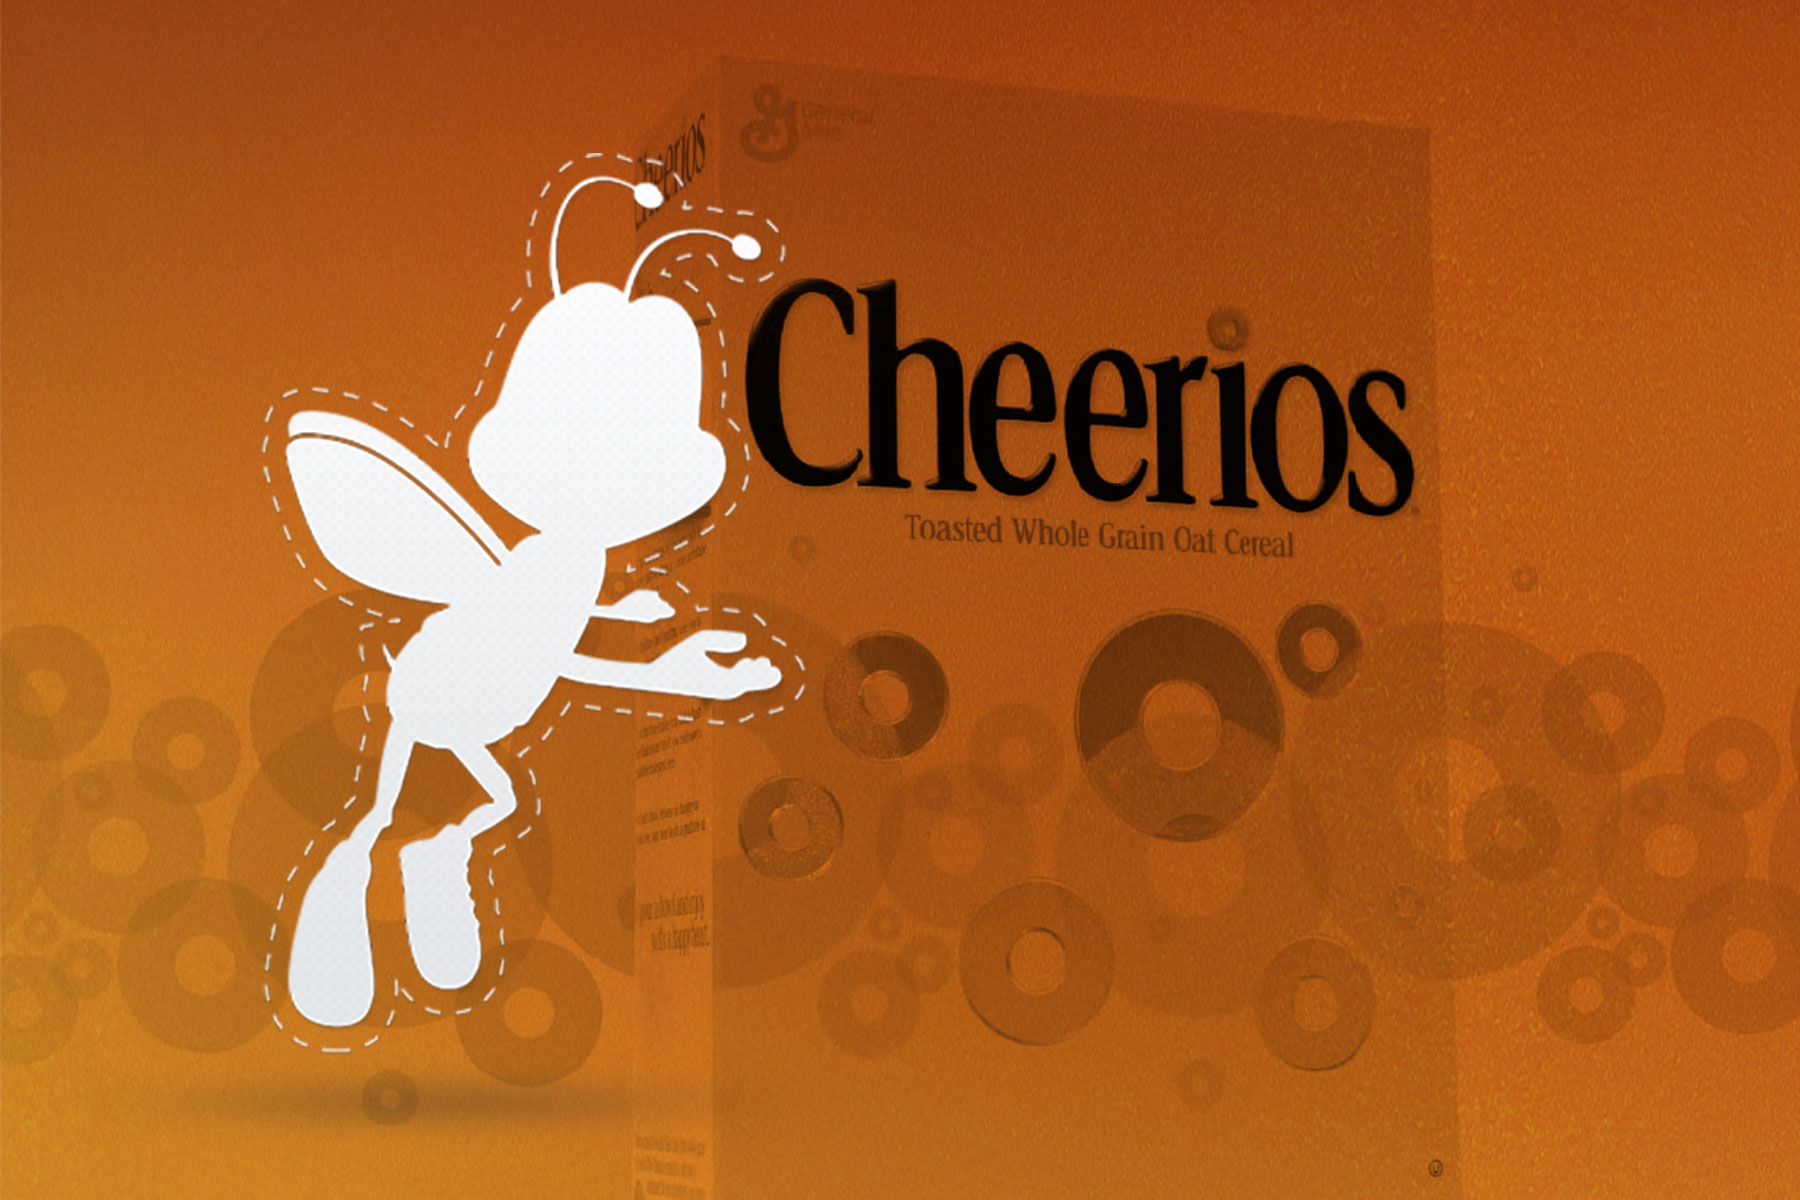 Critics say Cheerios' bee-saving campaign could hurt some ecosystems